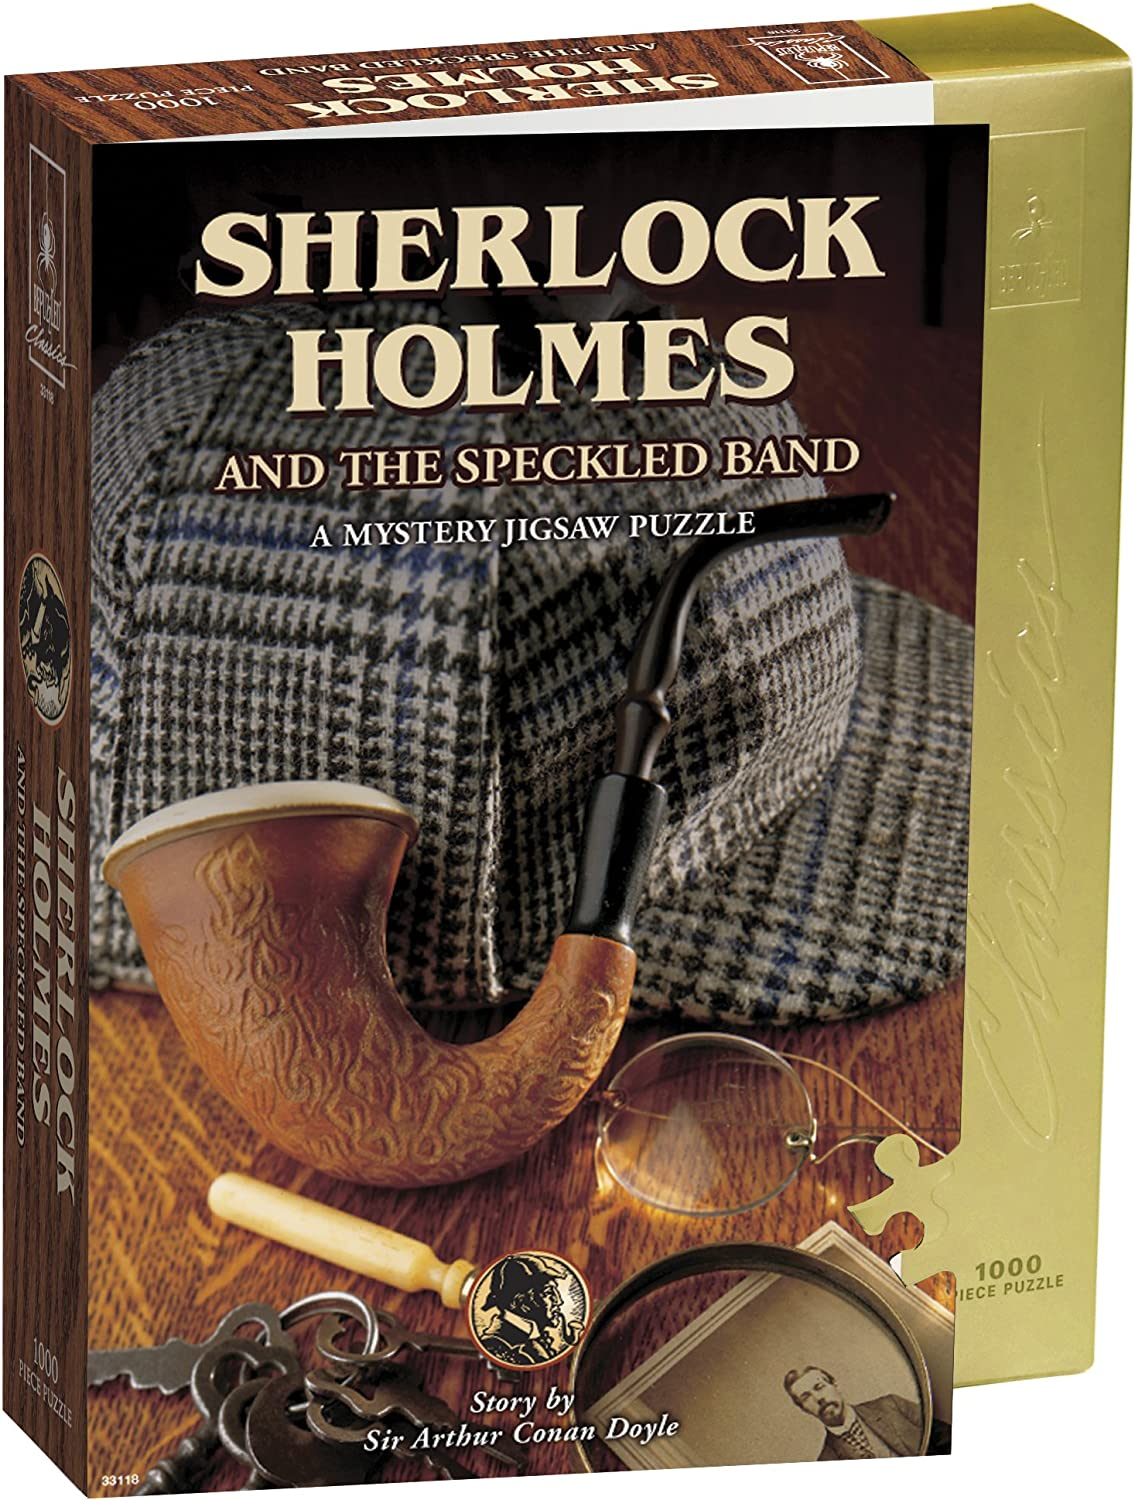 Sherlock Holmes and The Speckled Band Mystery Rompecabezas (Jigsaw Puzzle) (1000 Piezas): Amazon.es: Juguetes y juegos